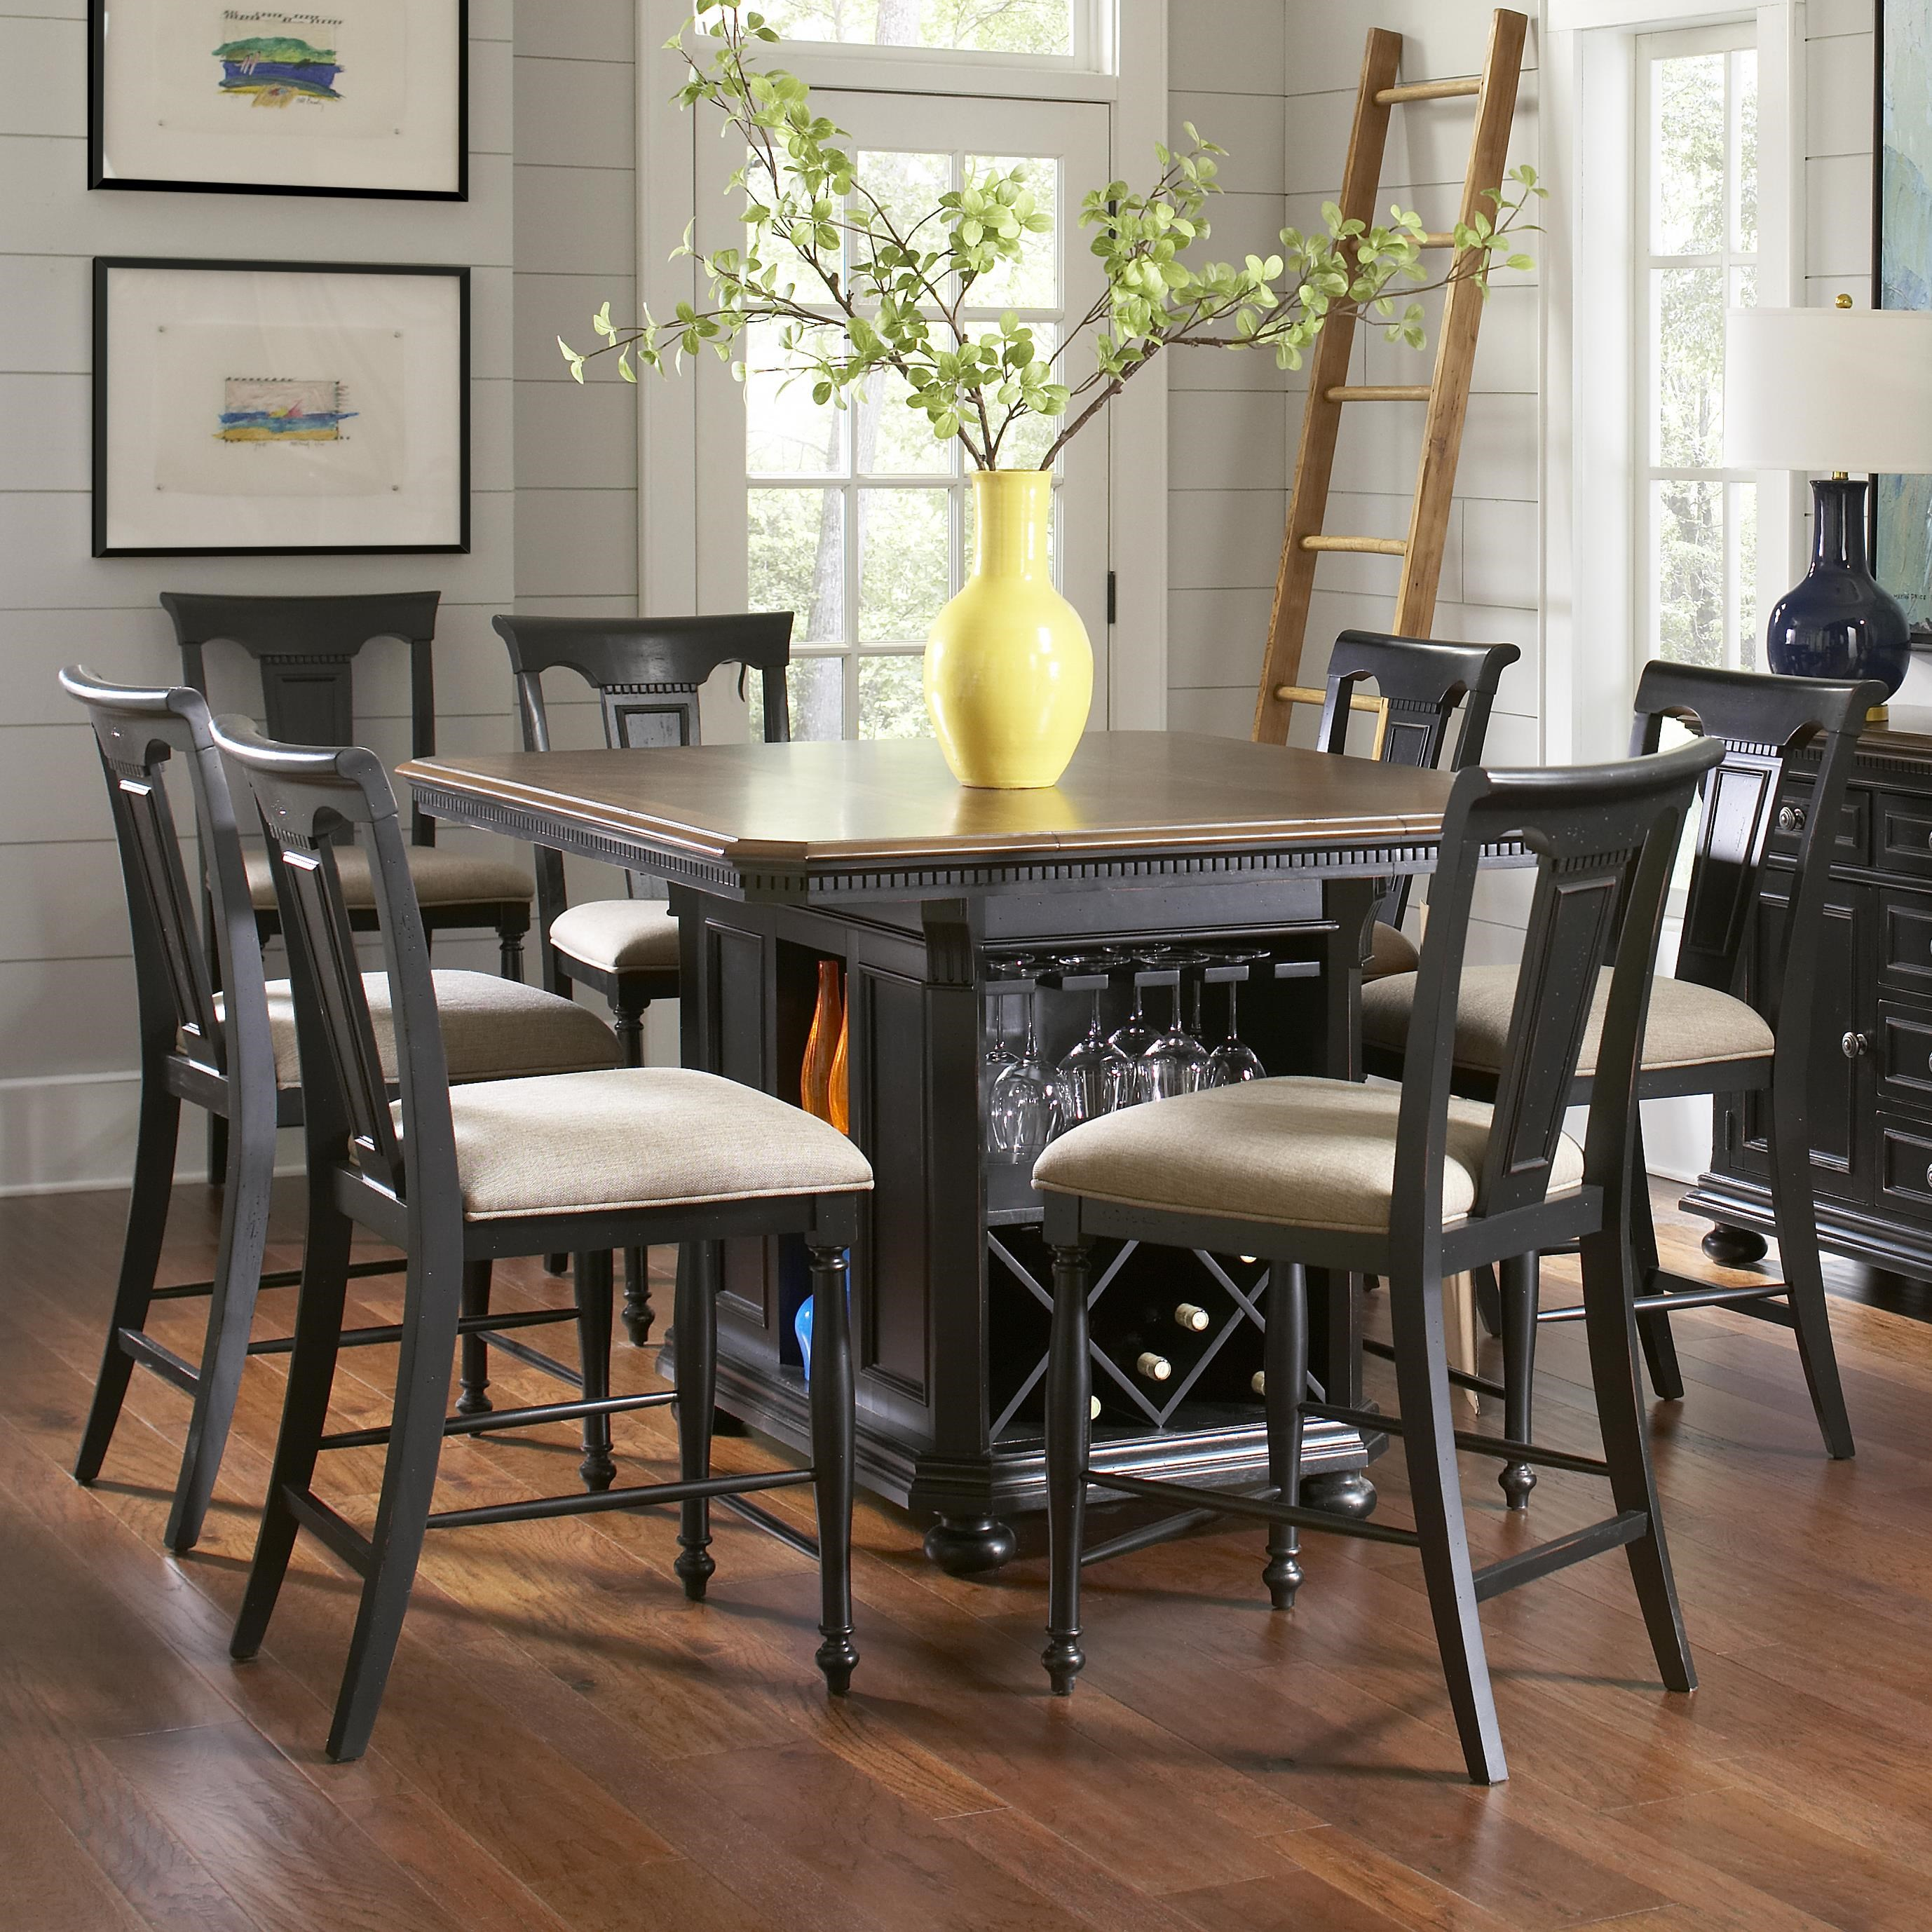 Medium image of avalon furniture rivington hall traditional 7 piece kitchen island counter table set